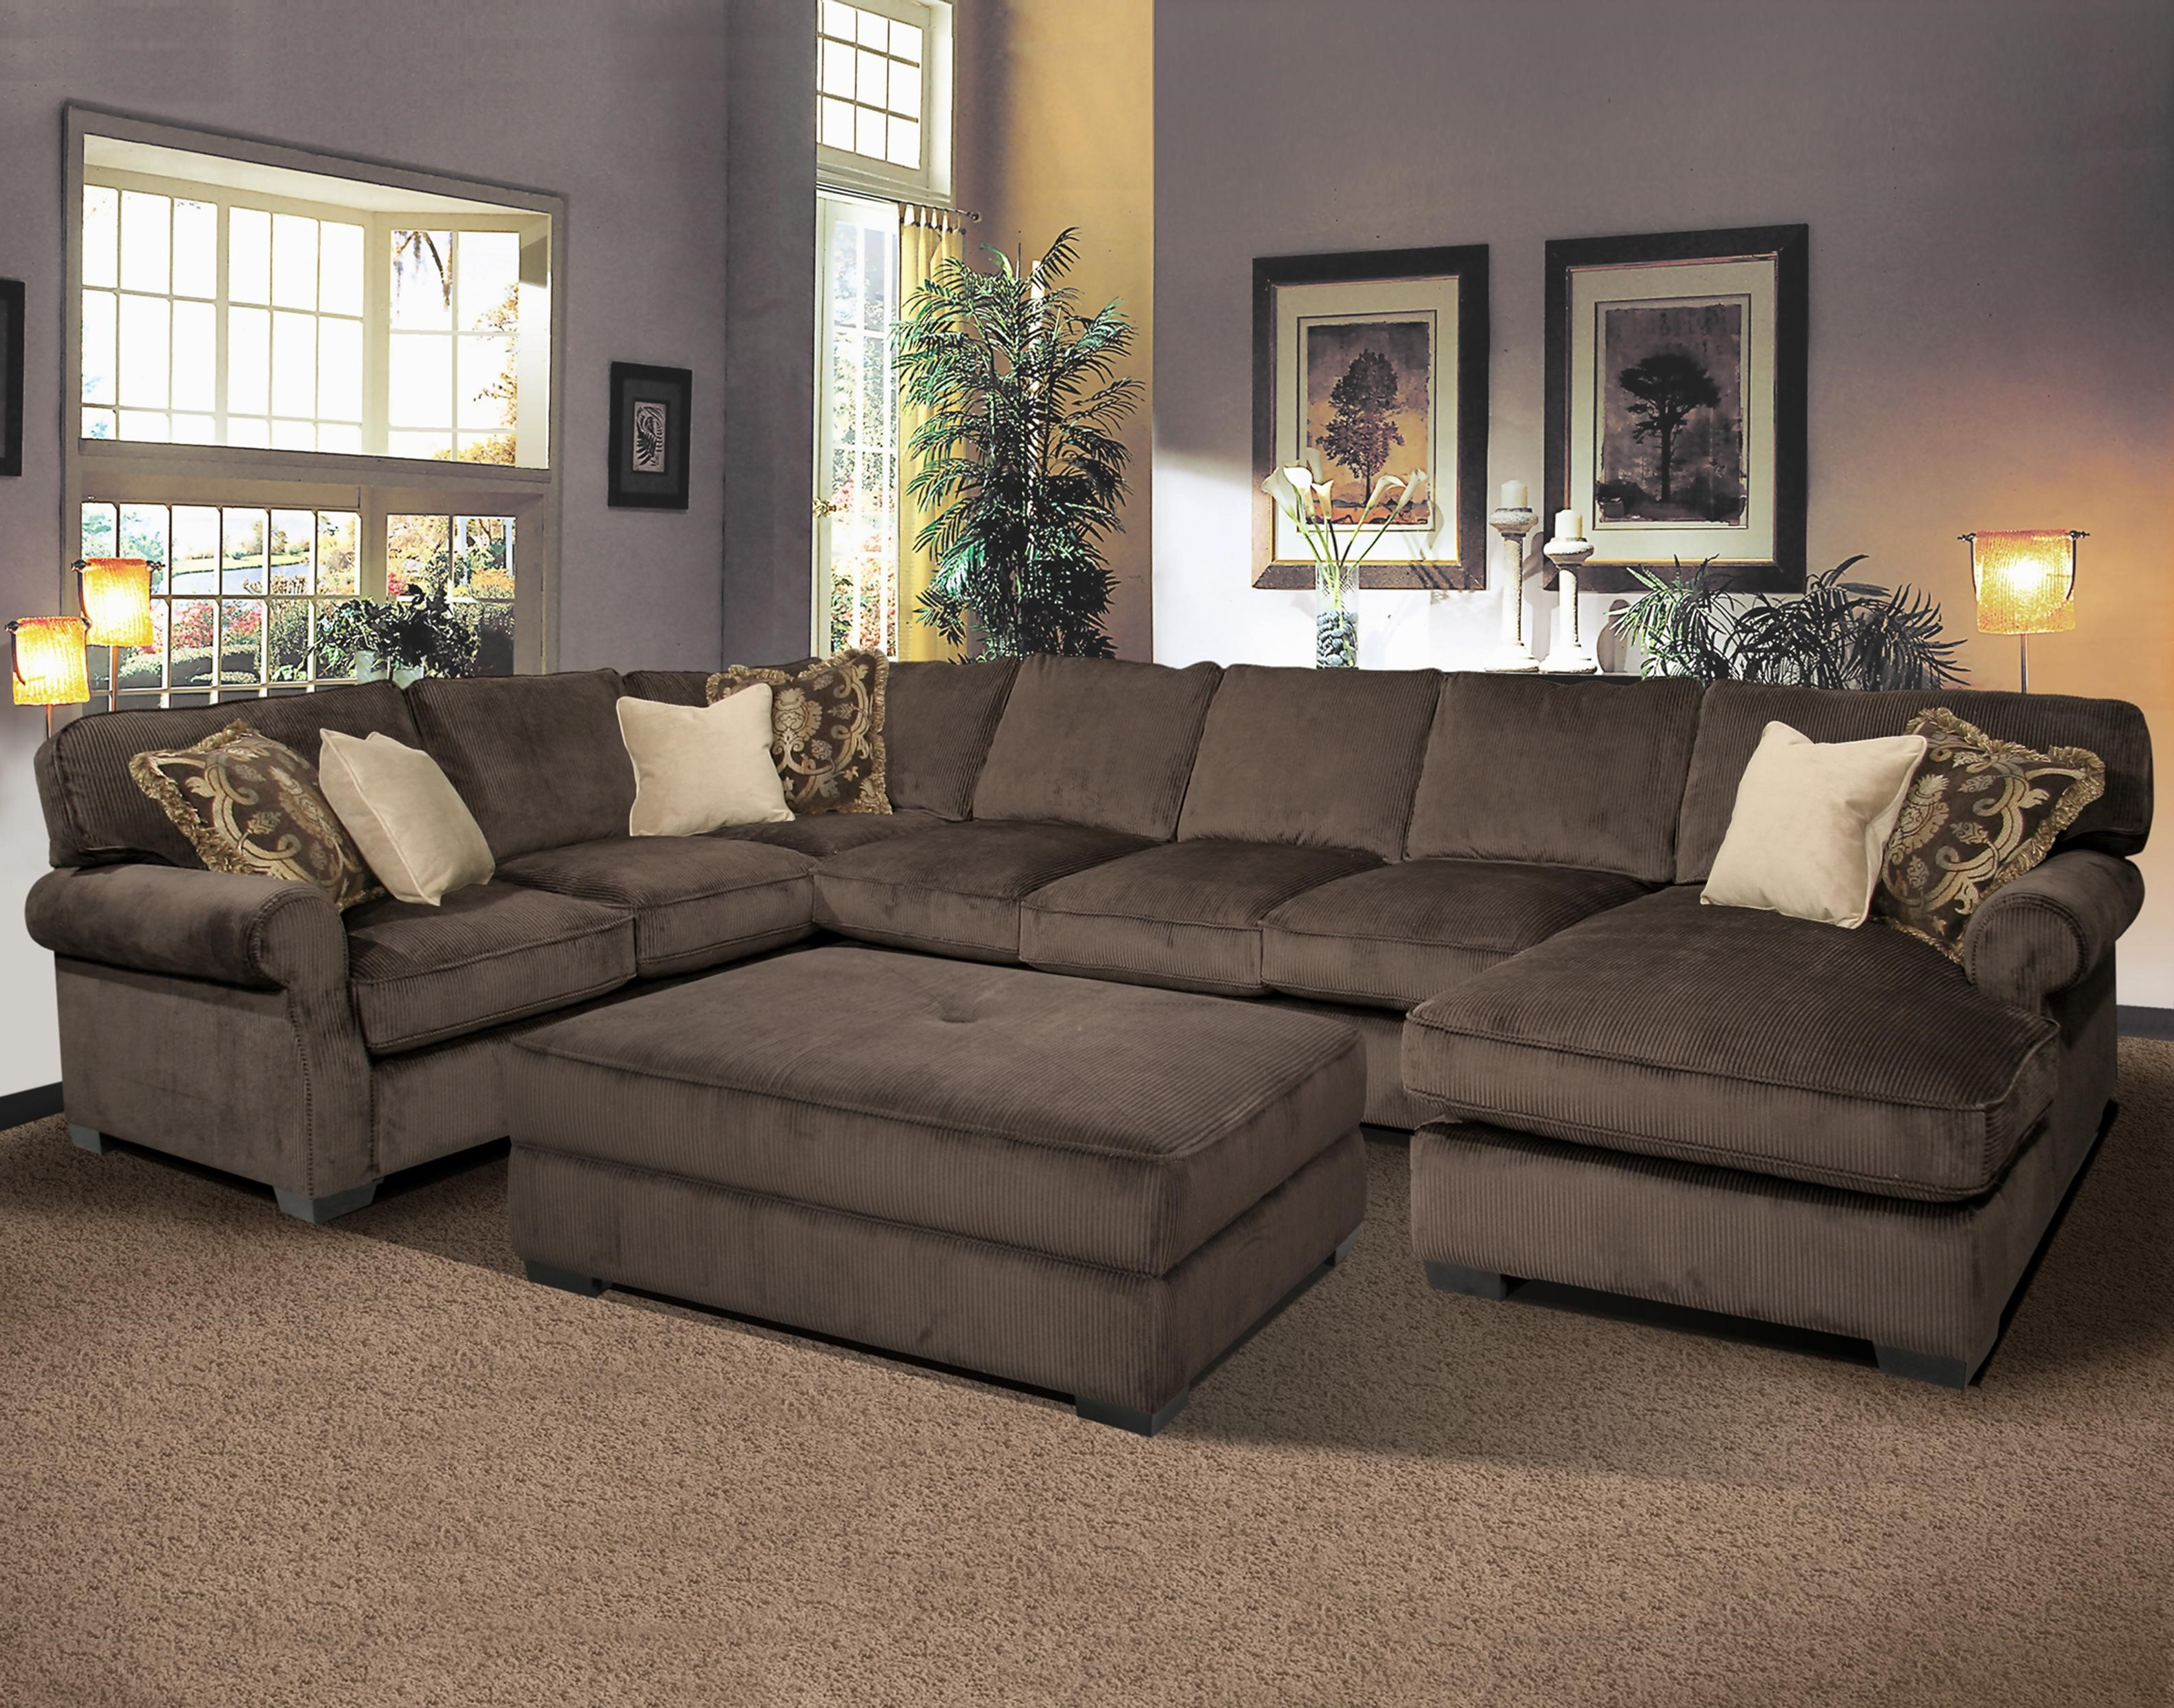 Tallahassee Sectional Sofas Inside Favorite Furniture: Harbor Freight Furniture (View 3 of 15)